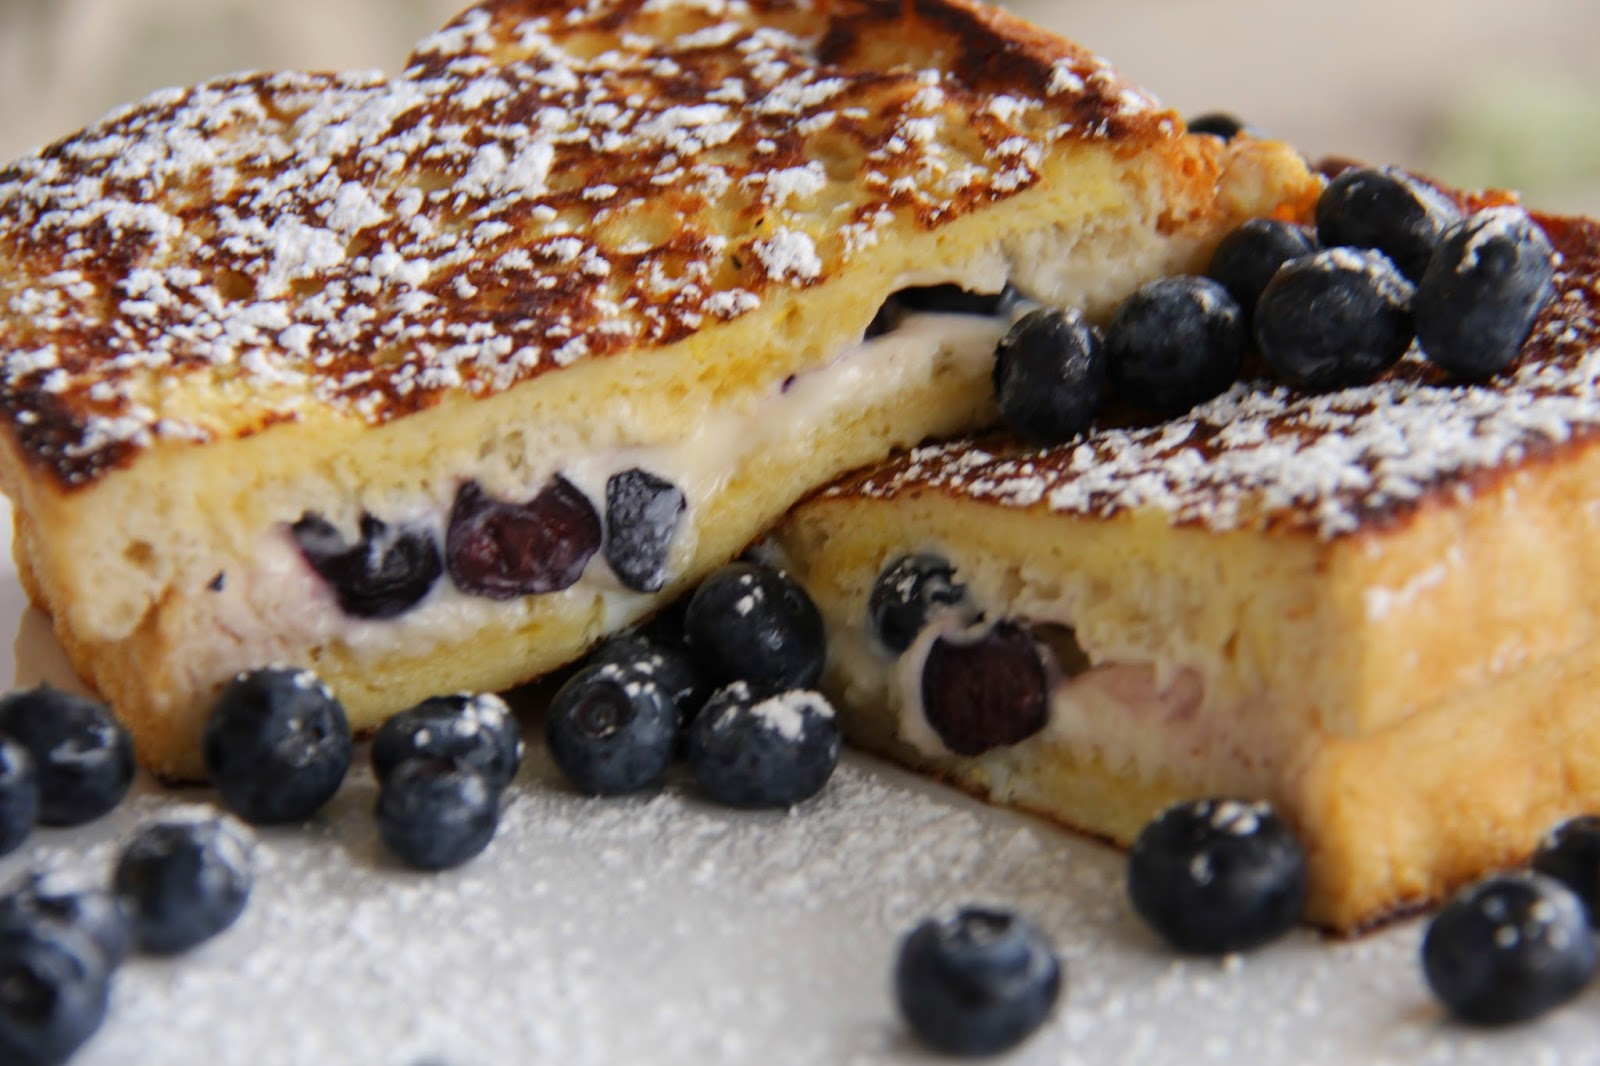 Bountiful Kitchen: Blueberry Cream Cheese Stuffed French Toast